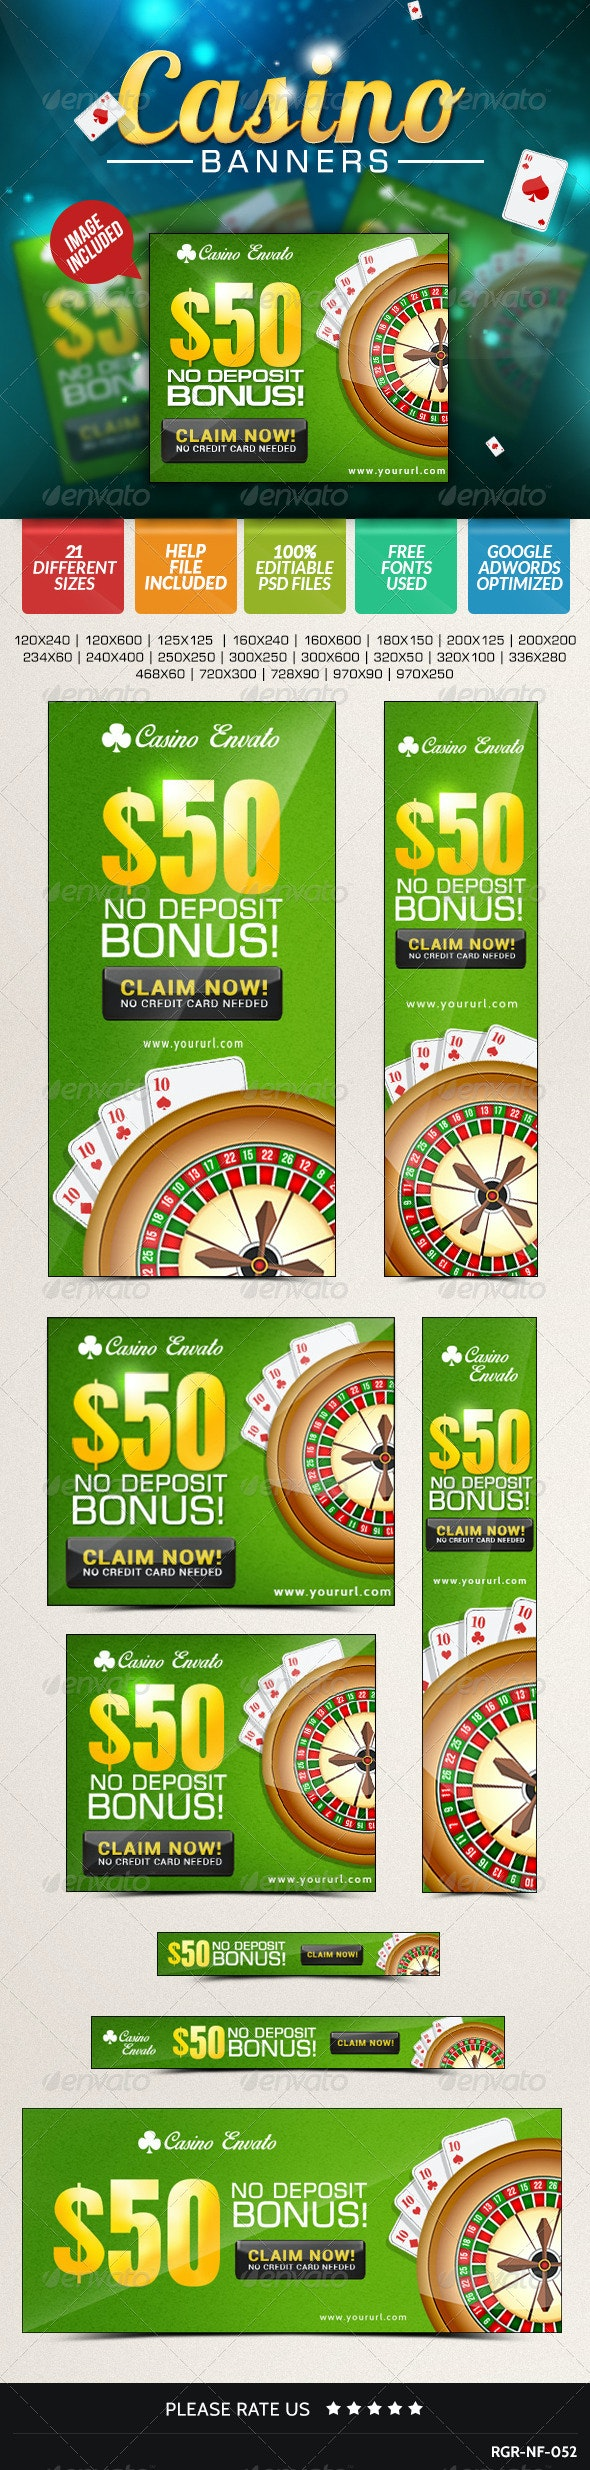 Casino Banners - Banners & Ads Web Elements